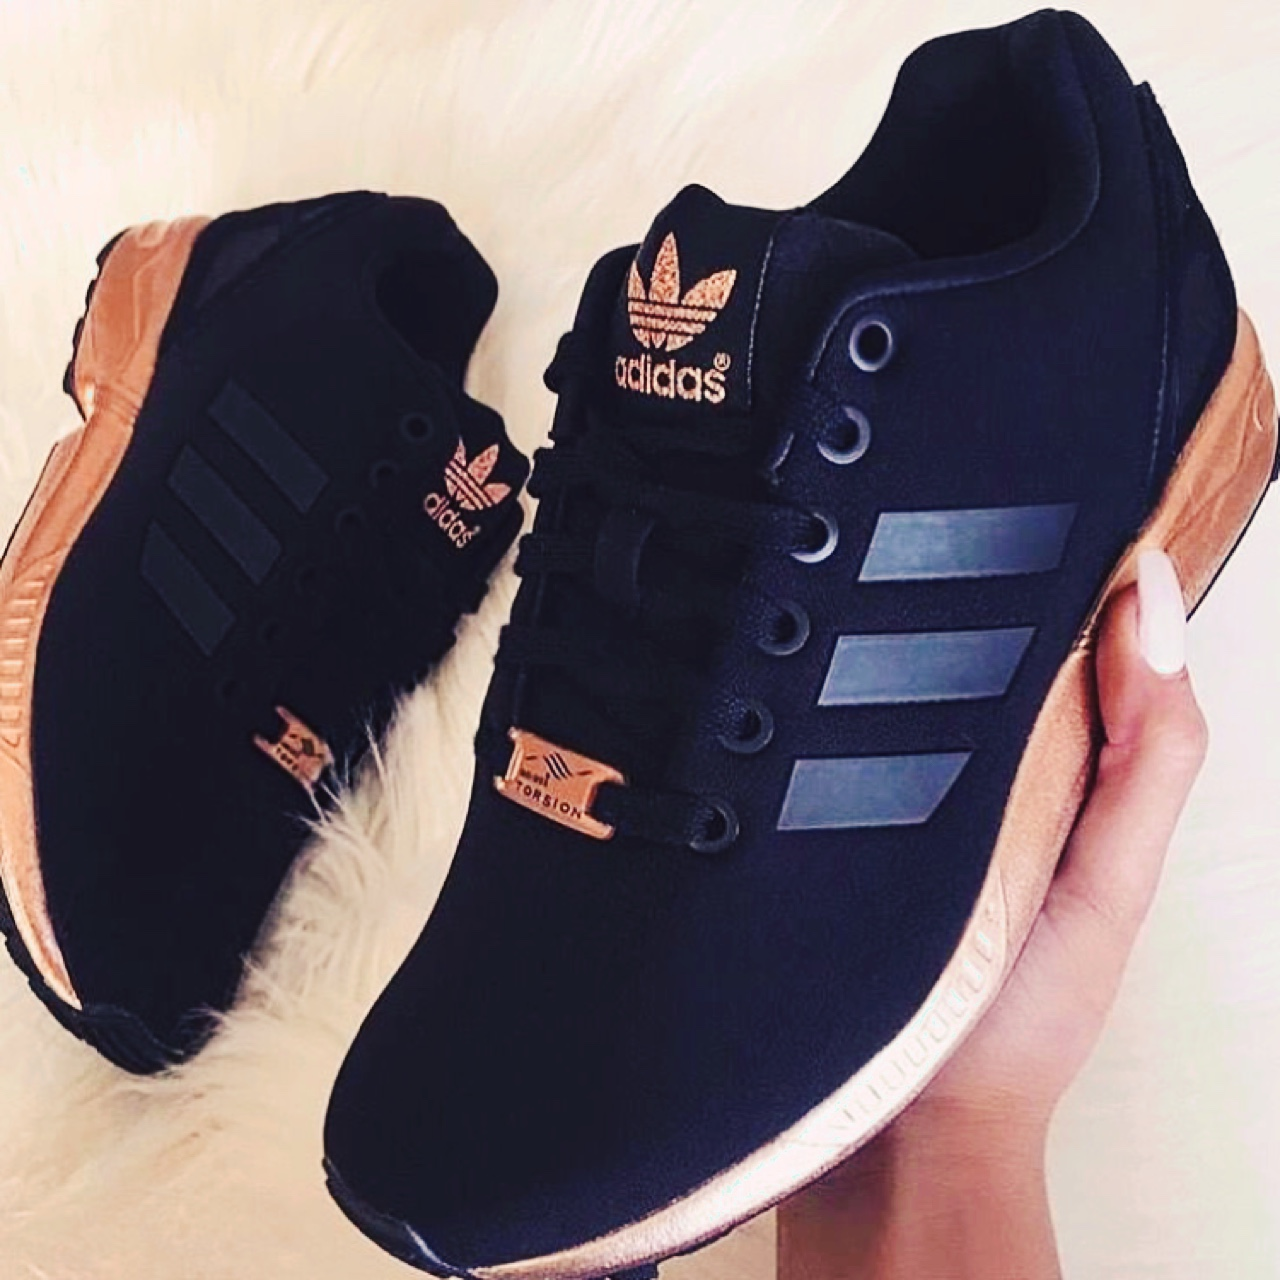 adidas rose and gold